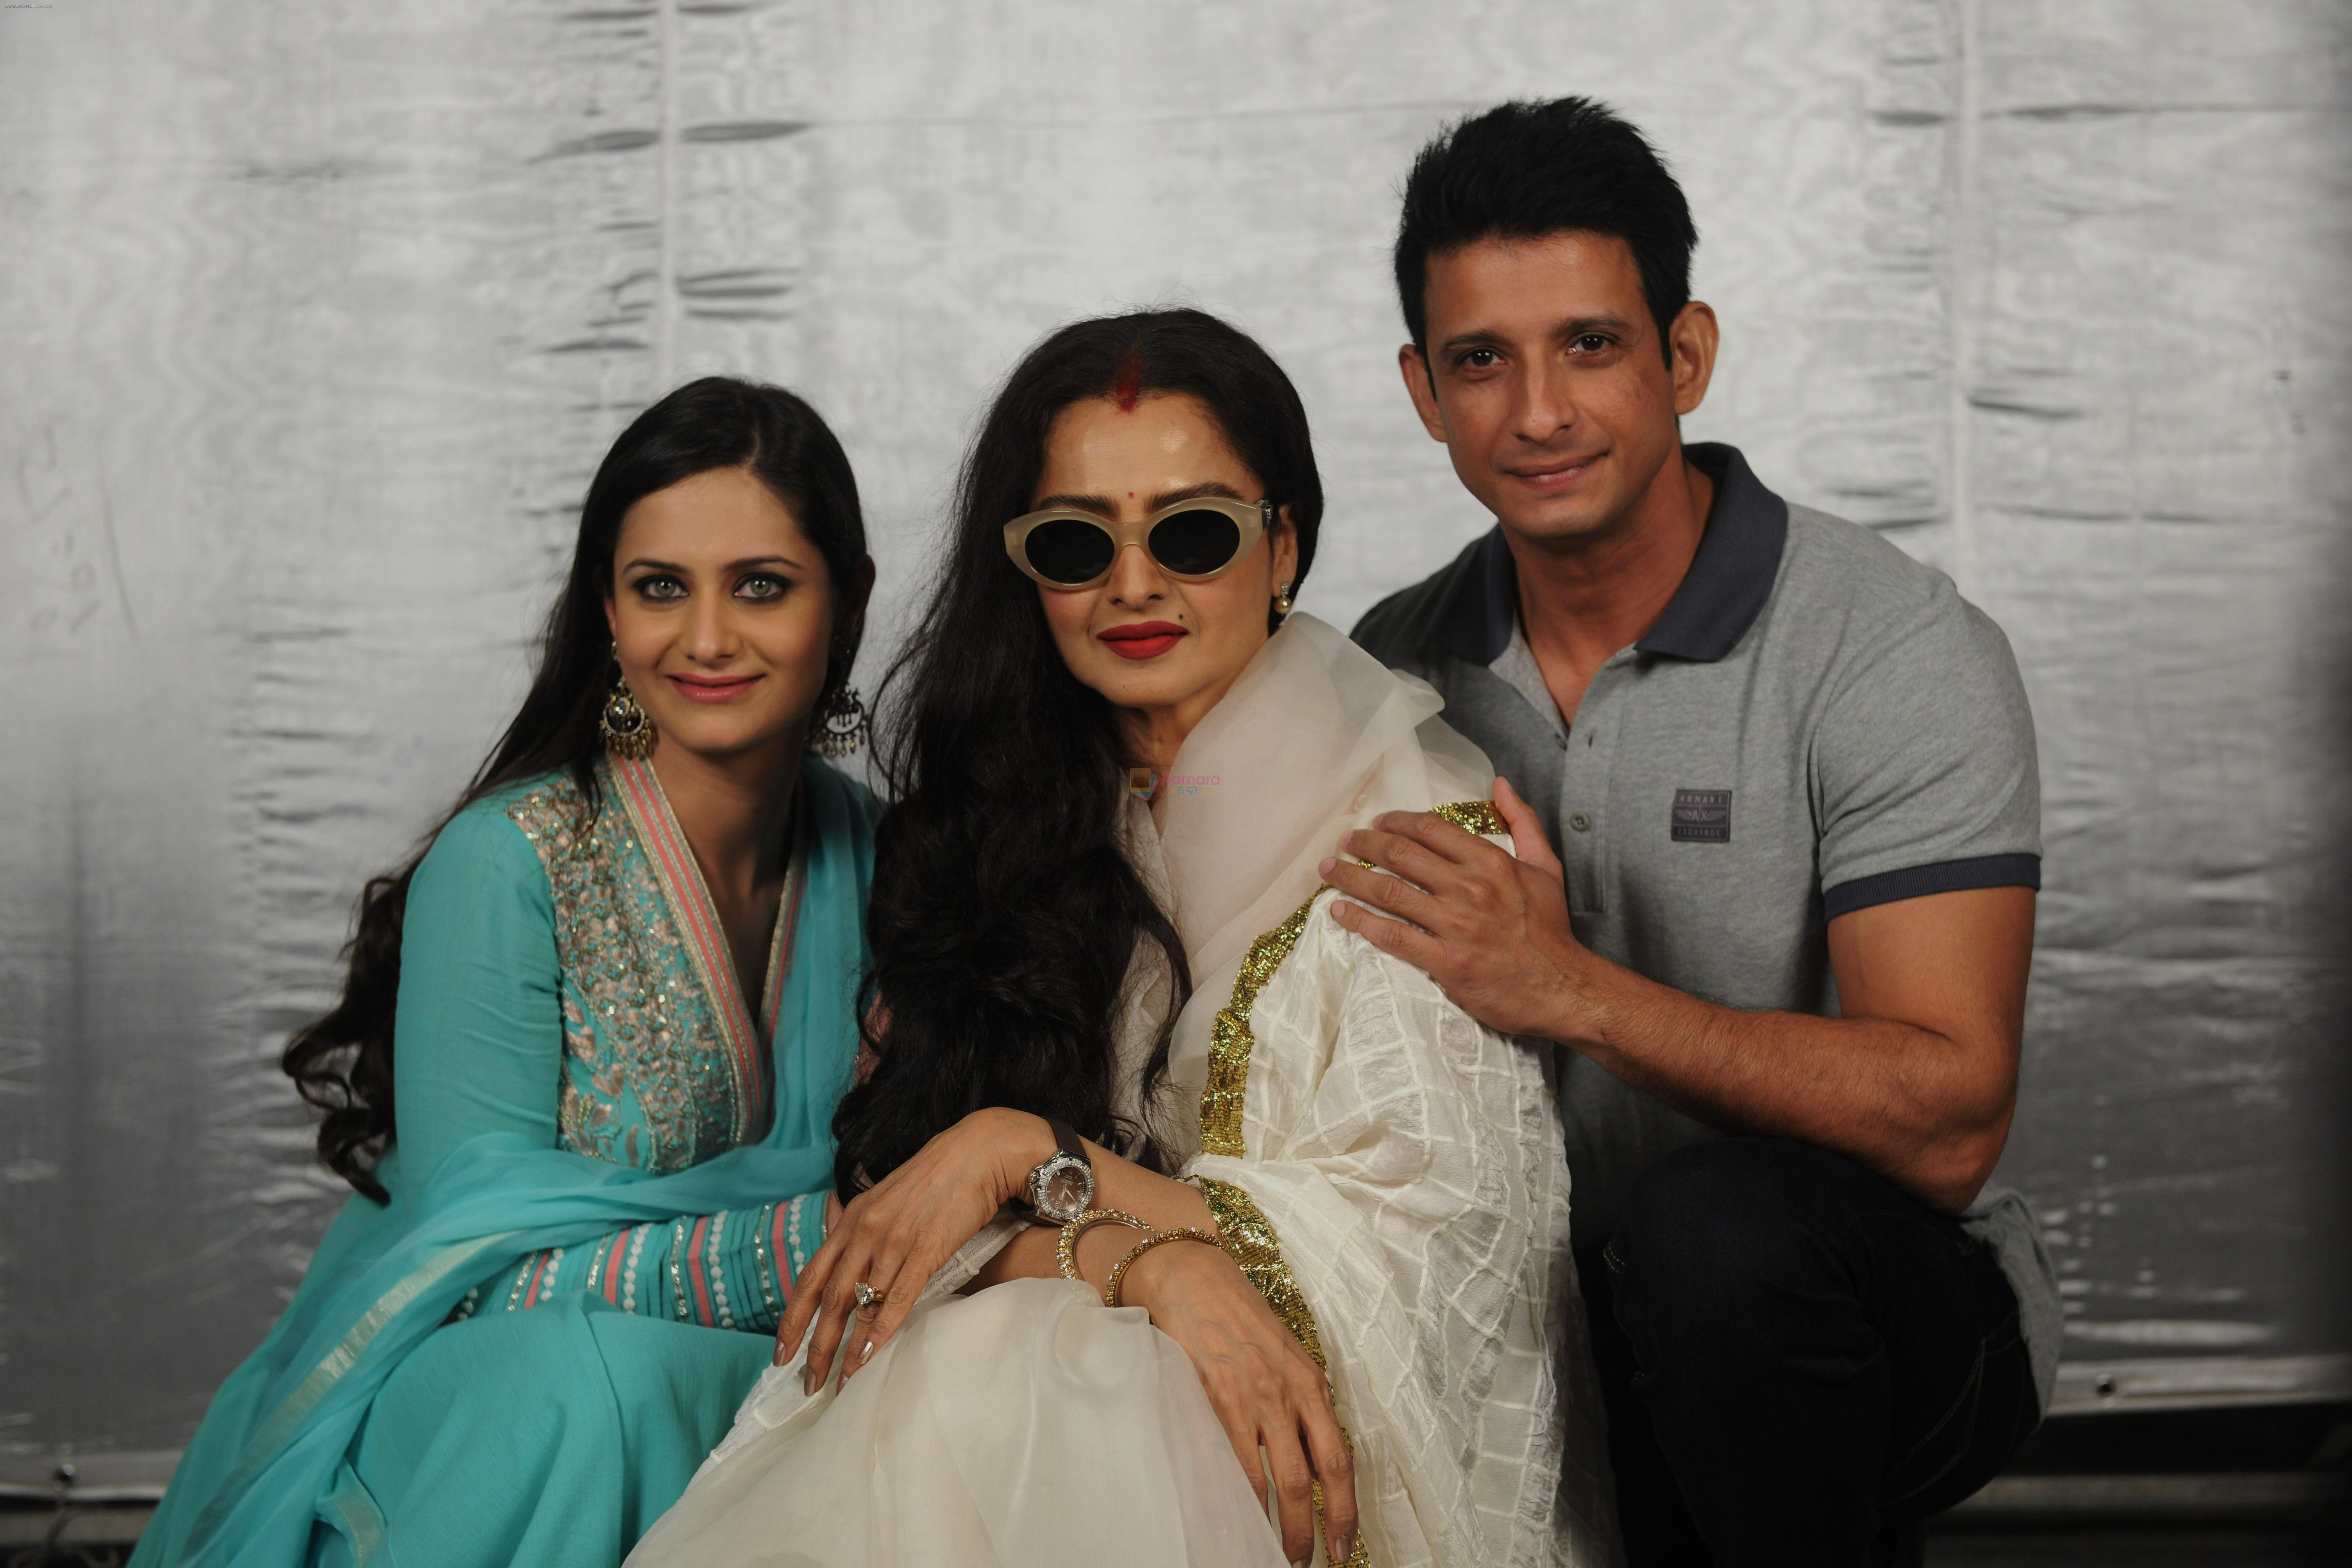 Shweta Kumar, Rekha and Sharman joshi posing for Super Nani on 12th December 2012